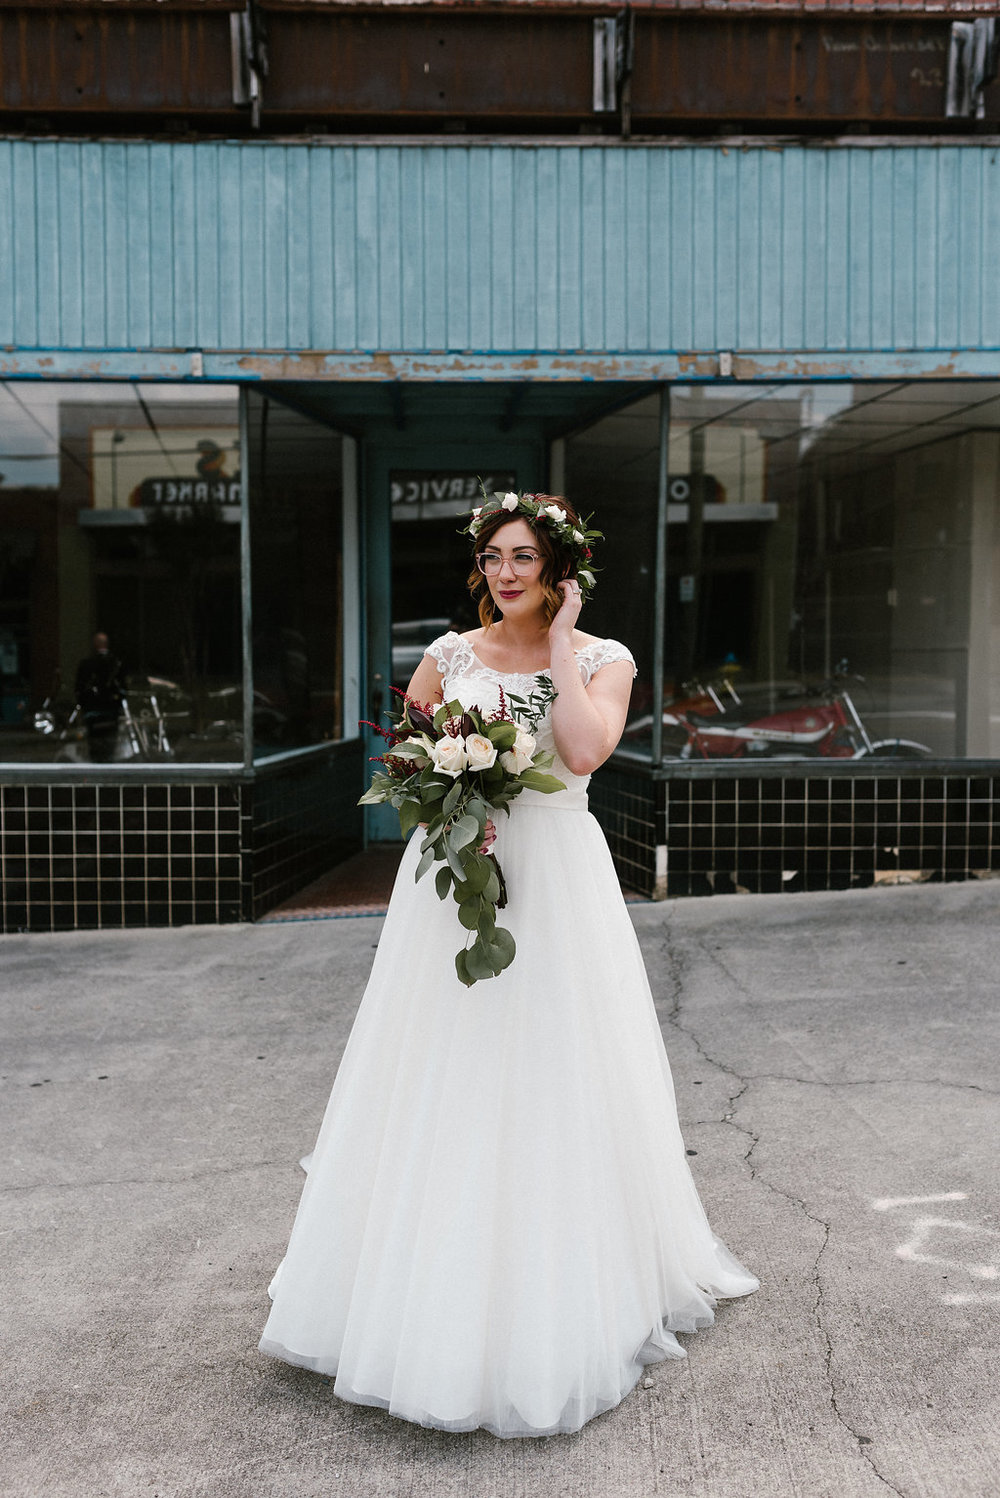 Standard Downtown Knoxville Wedding Venue Bridal Portrait Urban Central Avenue